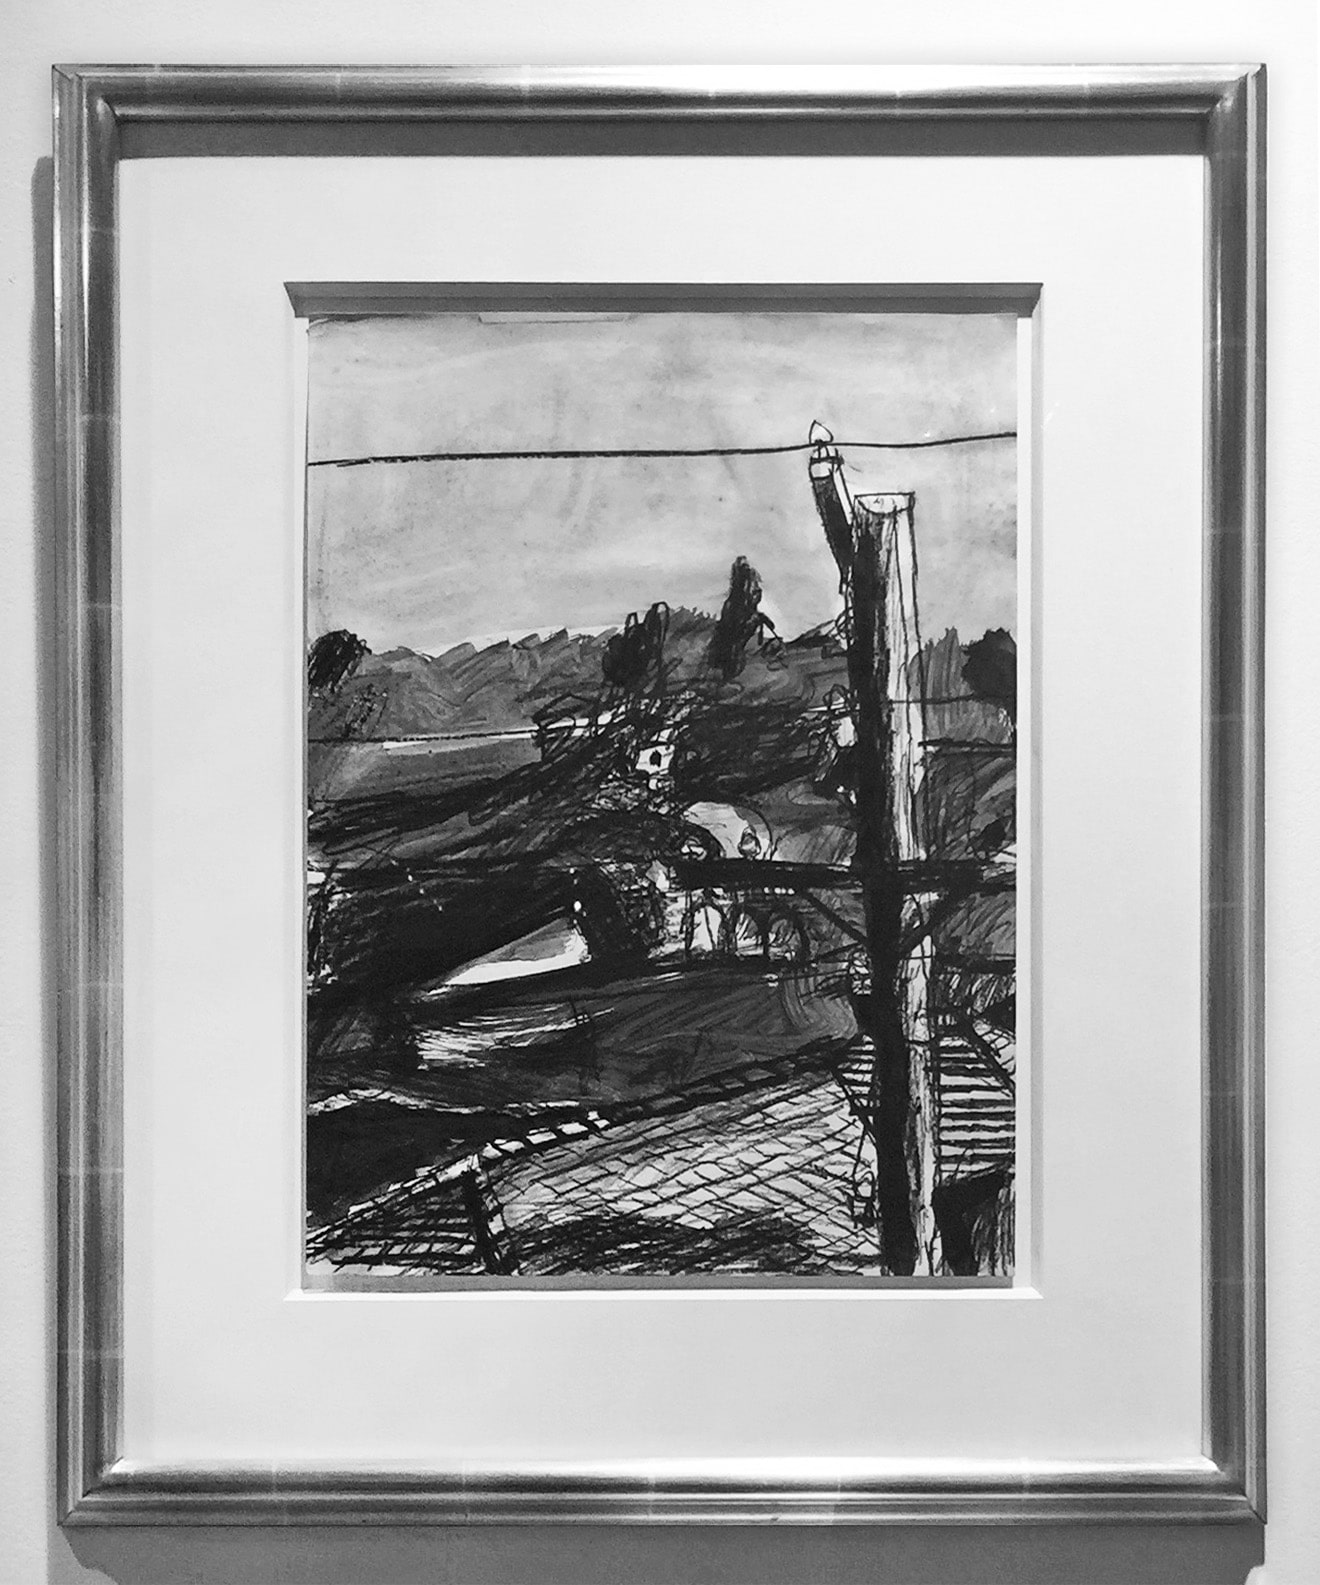 Richard Diebenkorn - Landscape (Framed)